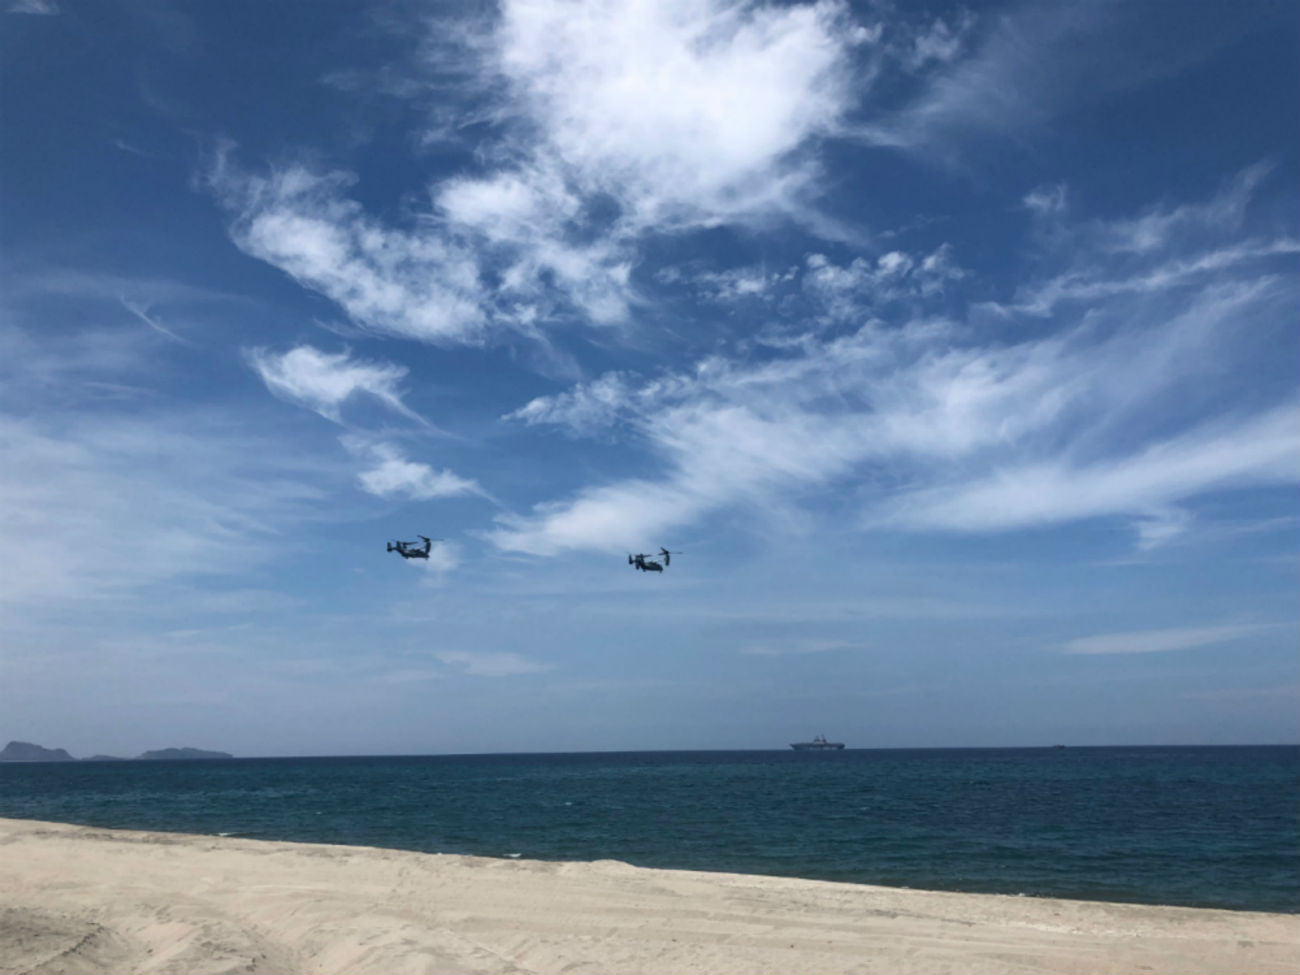 SCRIPTED EXERCISE MV-22 Osprey aircraft from the United States start the first wave of the amphibious exercises in Balikatan 2019. Photo by Sofia Tomacruz/Rappler